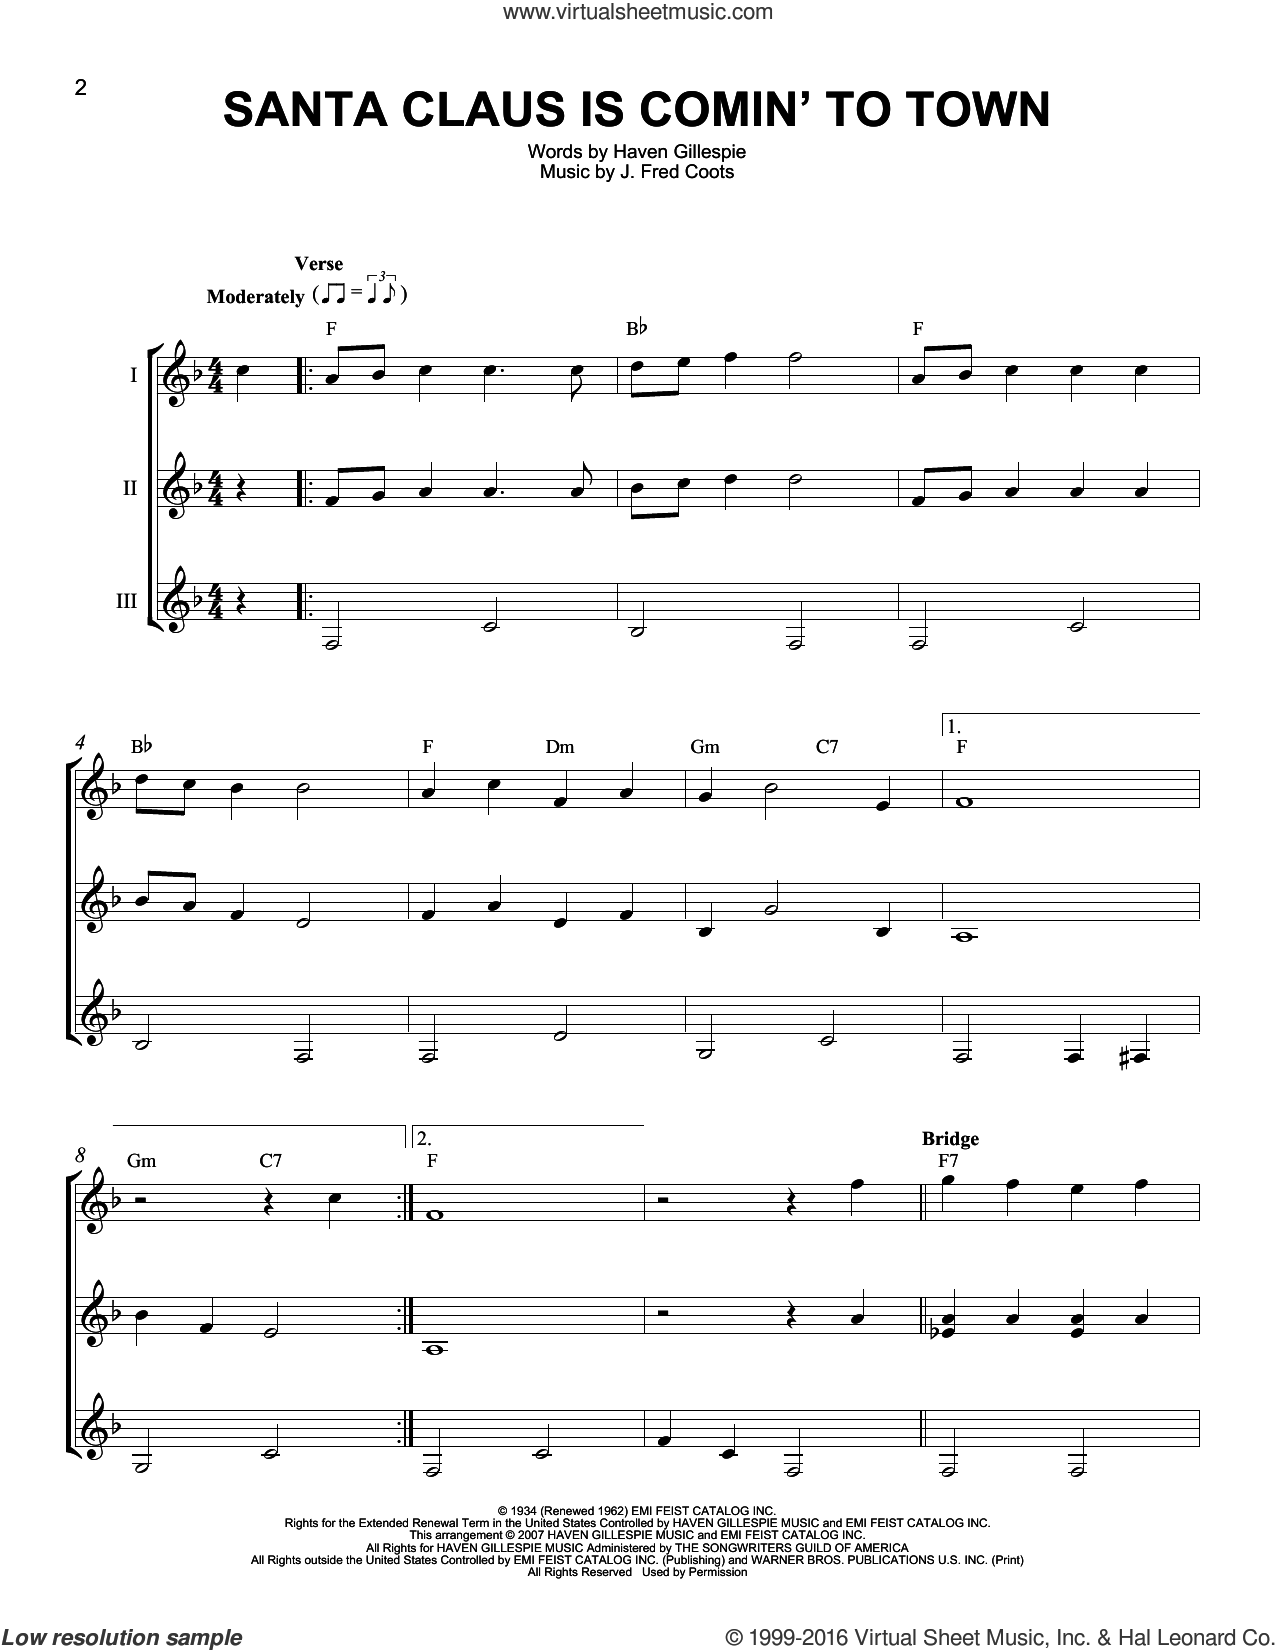 Santa Claus Is Comin' To Town sheet music for guitar ensemble by J. Fred Coots, J Arnold, Steve Tyrell and Haven Gillespie. Score Image Preview.